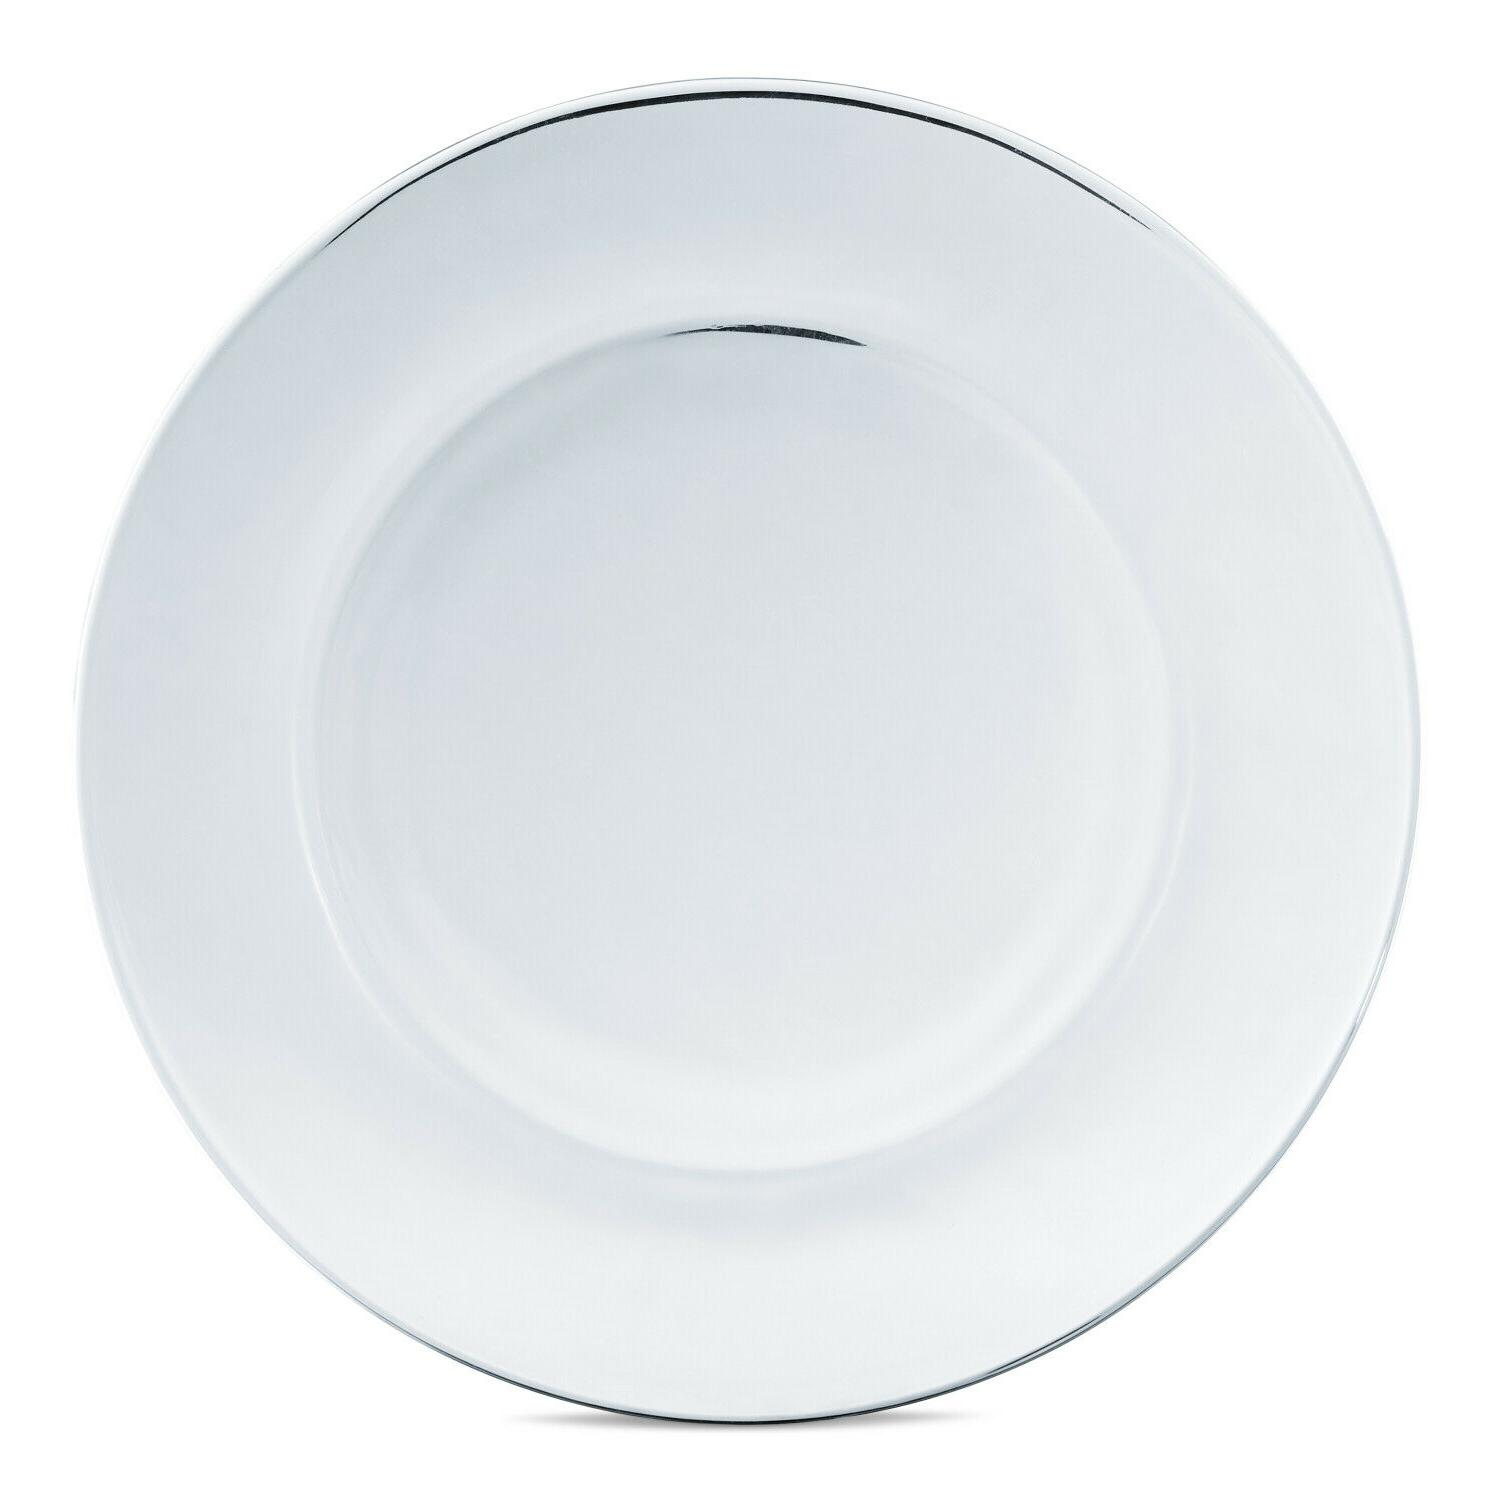 Dinnerware Modern Round Thick Glass Plates Bowls Dishes